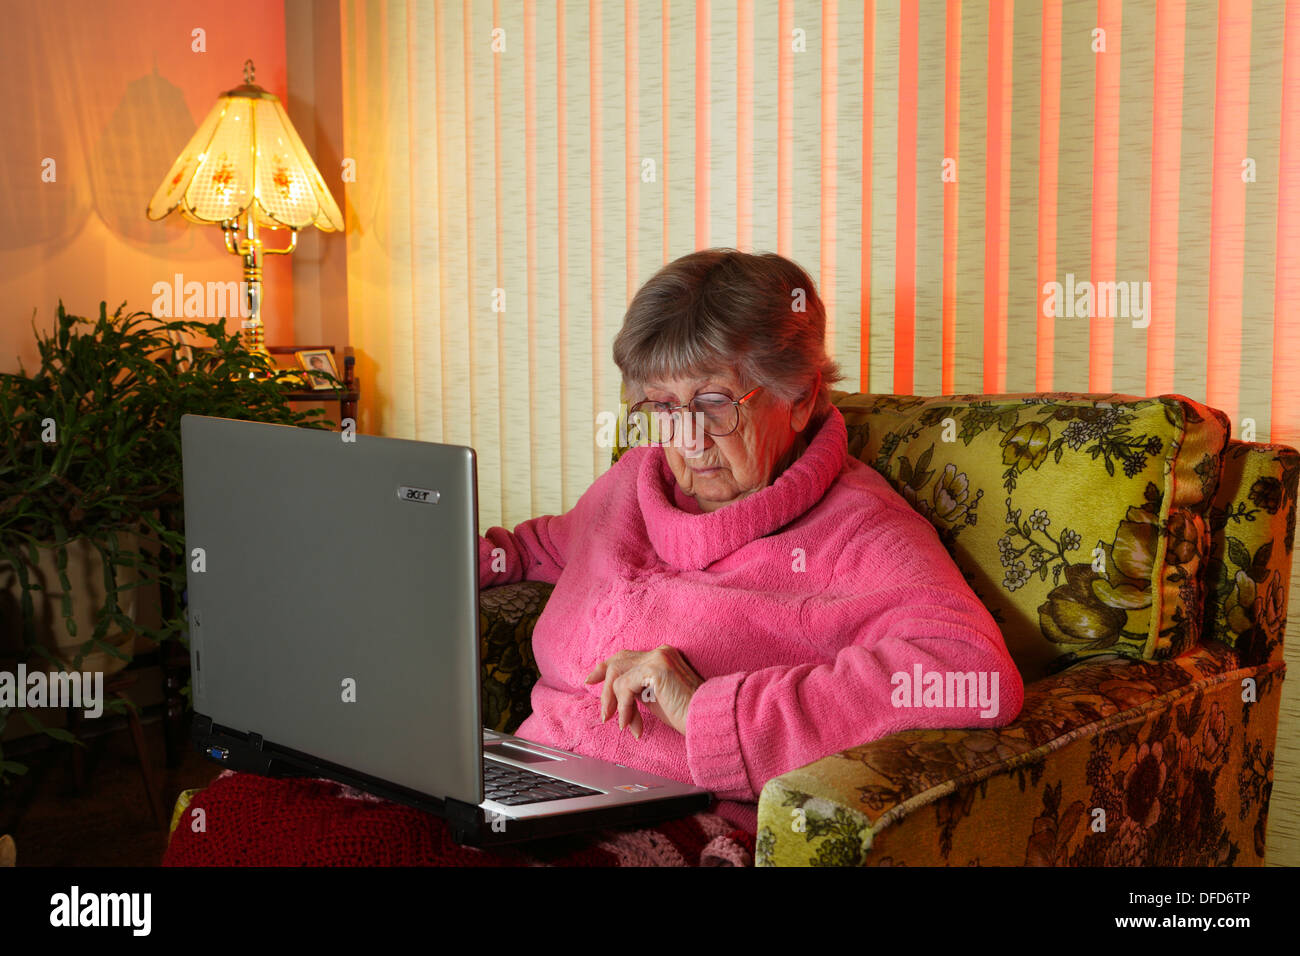 Elderly lady working on laptop computer-Victoria, British Columbia, Canada. - Stock Image